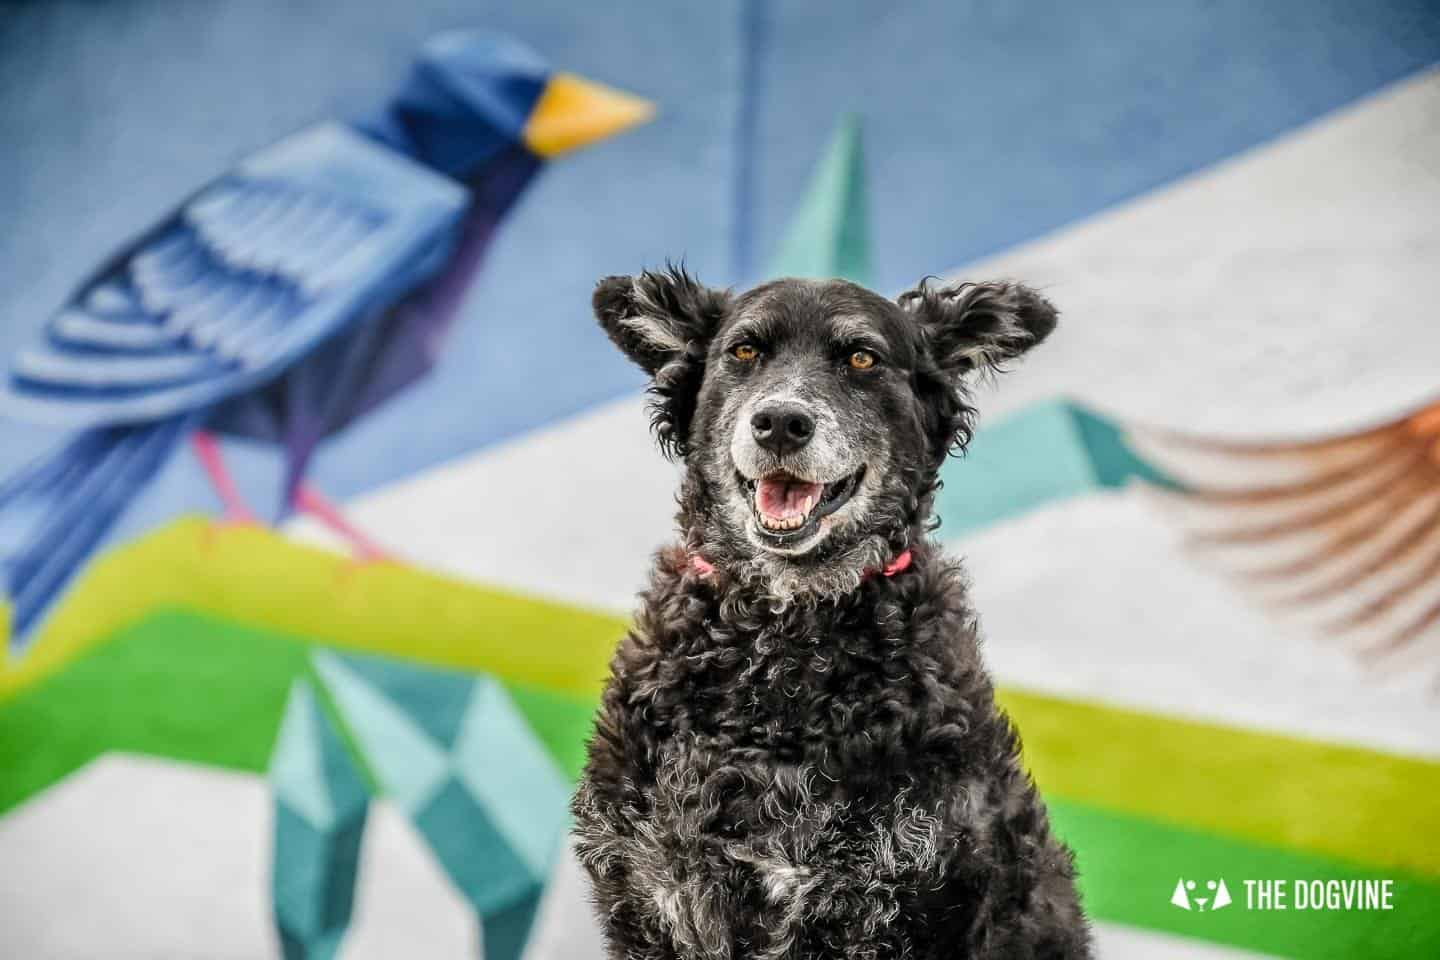 The Dogvine Selected As One Of The Feedspot Top 10 UK Dog Blogs 9